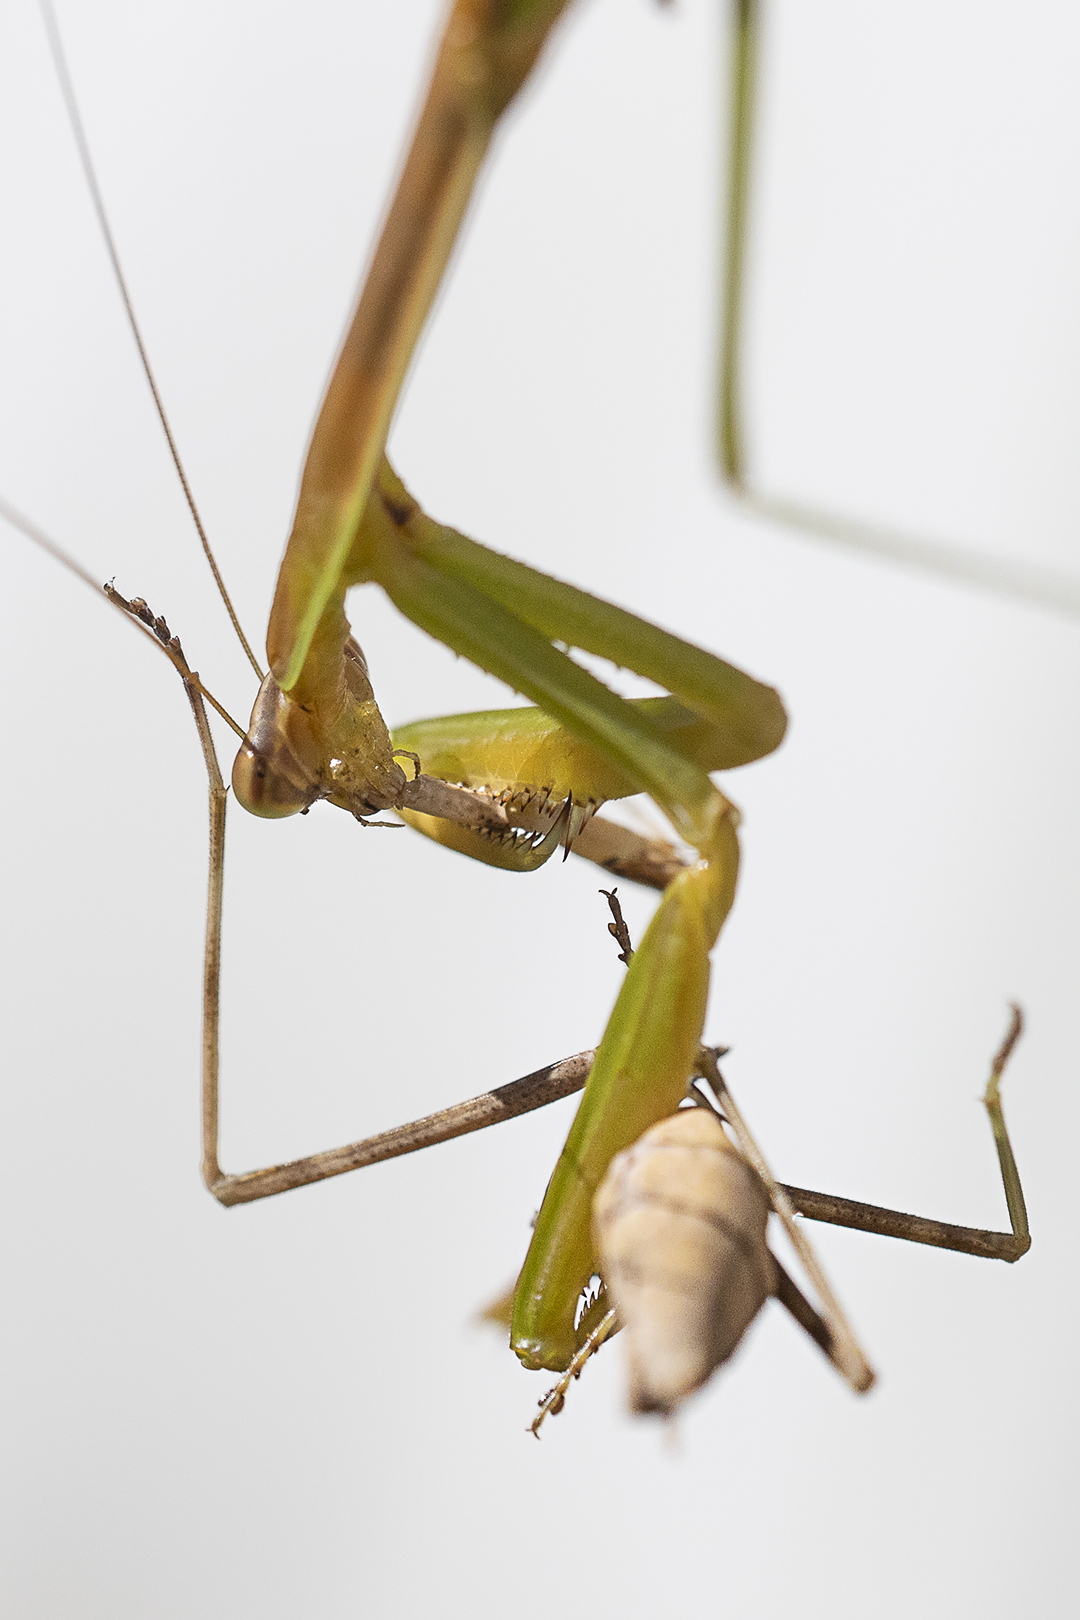 Praying_Mantis_Eating_Prey_v3+4X_76A6002